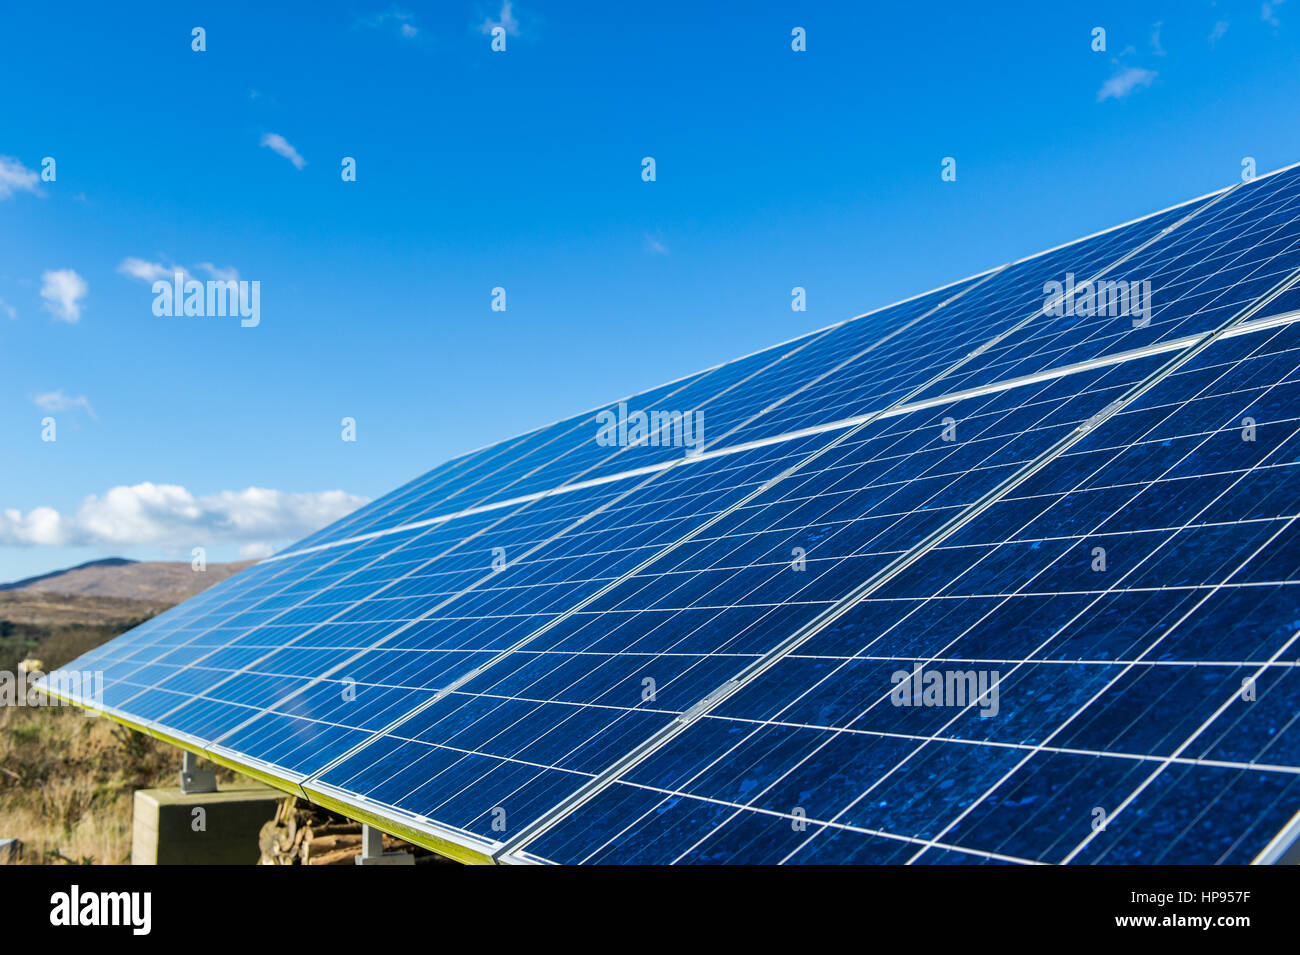 solar-panels-close-up-under-a-blue-sky-with-copy-space-HP957F.jpg